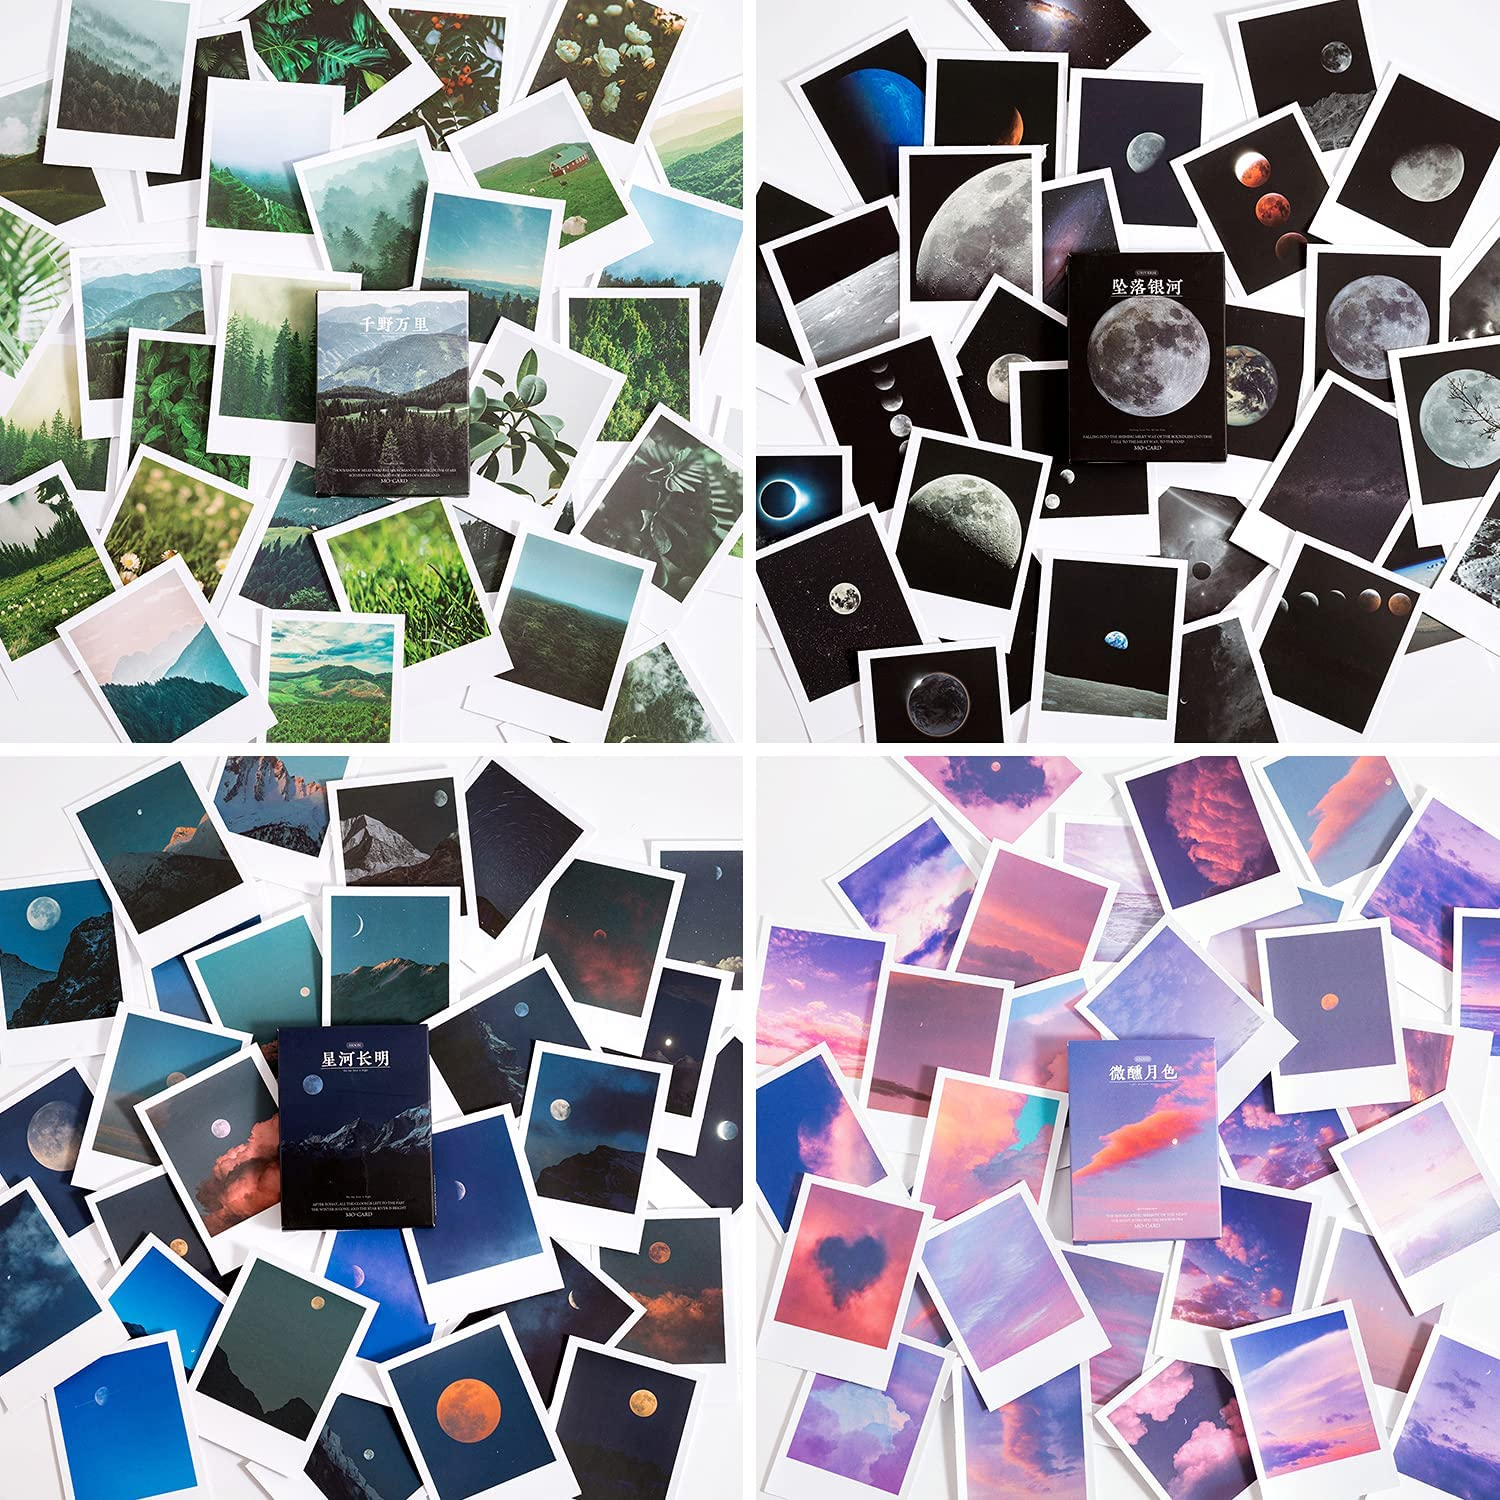 Landscape Nature Stickers Set (120 Pieces), Aesthetic Mountain Forest Sky Cloud Galaxy Space Moon Phase Sunset Natural Scenery Collage Pictures for Art Journaling Scrapbooking Planner Bullet Junk Journal Supplies Notebook DIY Crafts Album Phone Cases Laptops Calendars